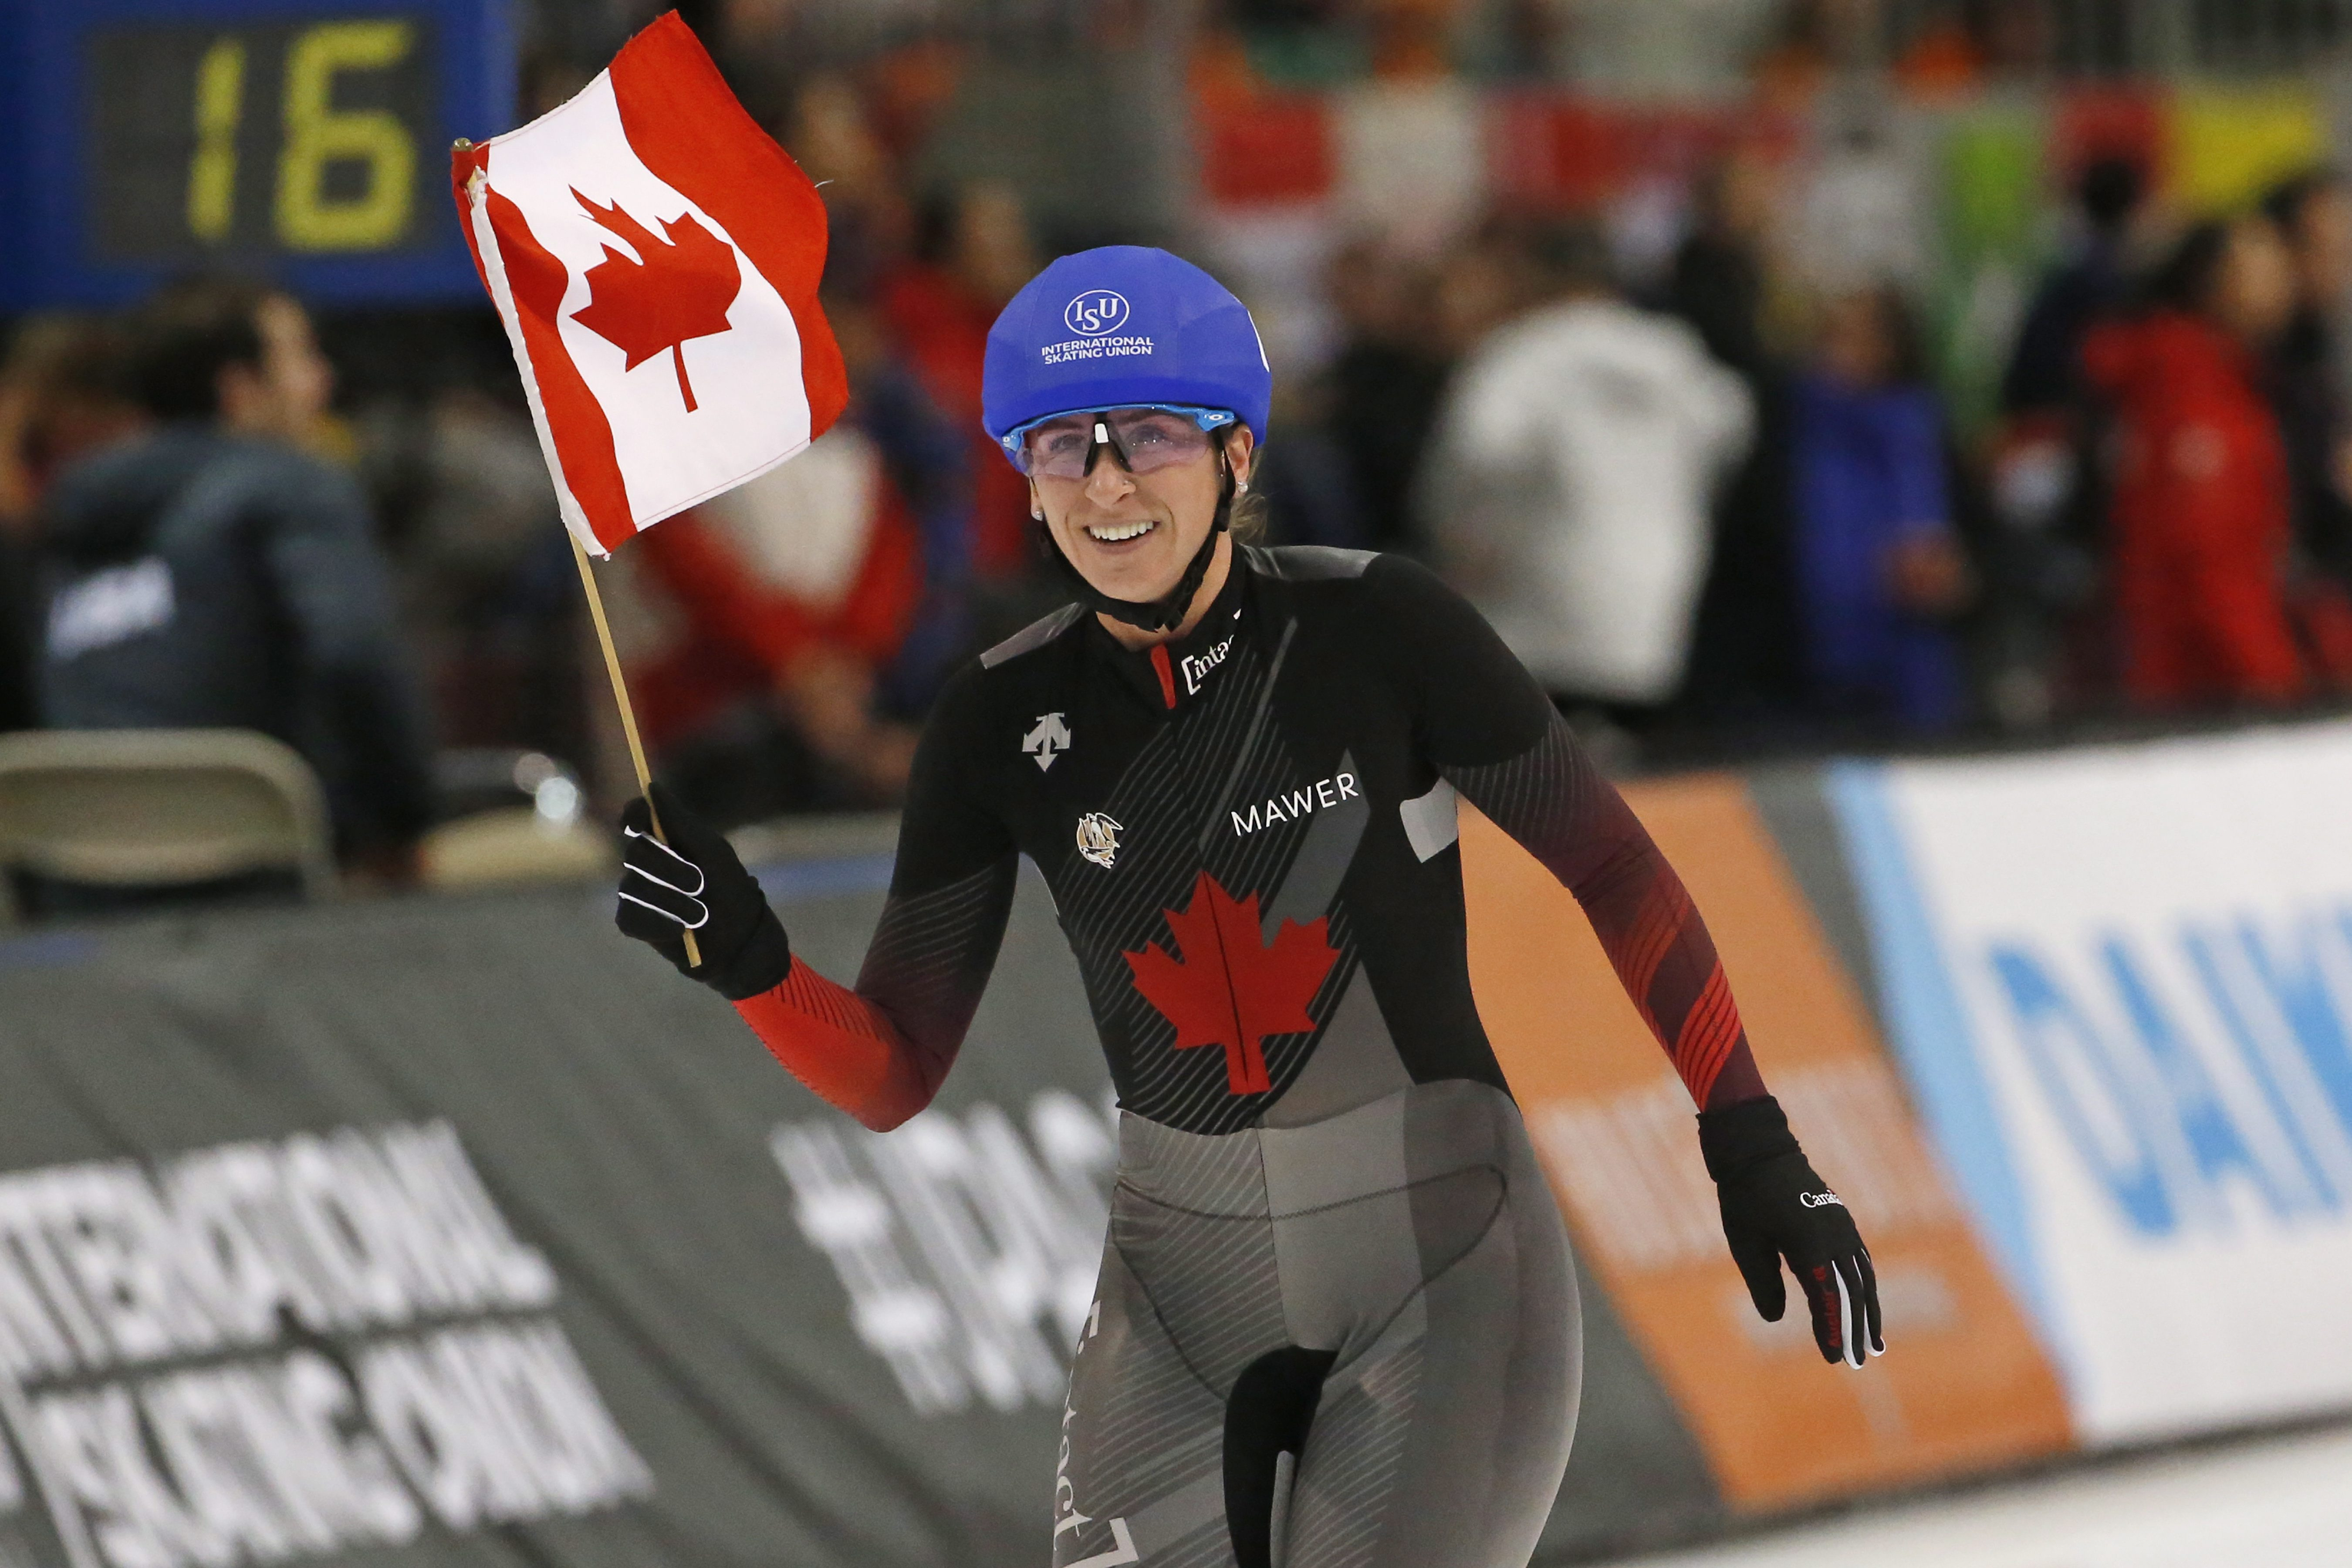 Speed skater takes victory lap waving Canadian flag